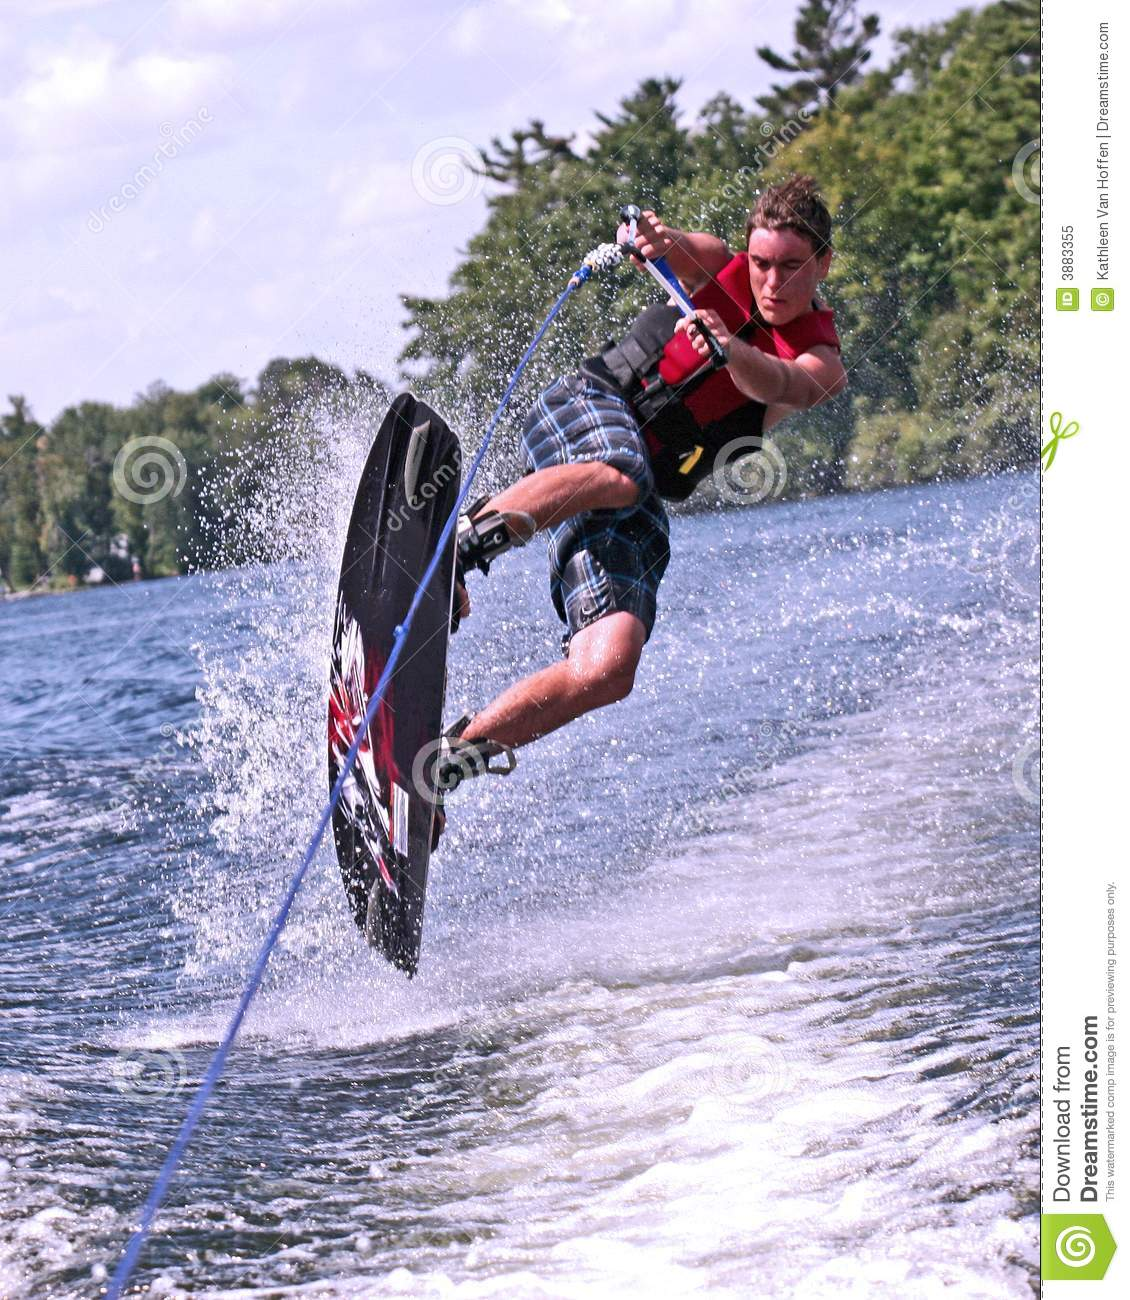 Adolescente no wakeboard